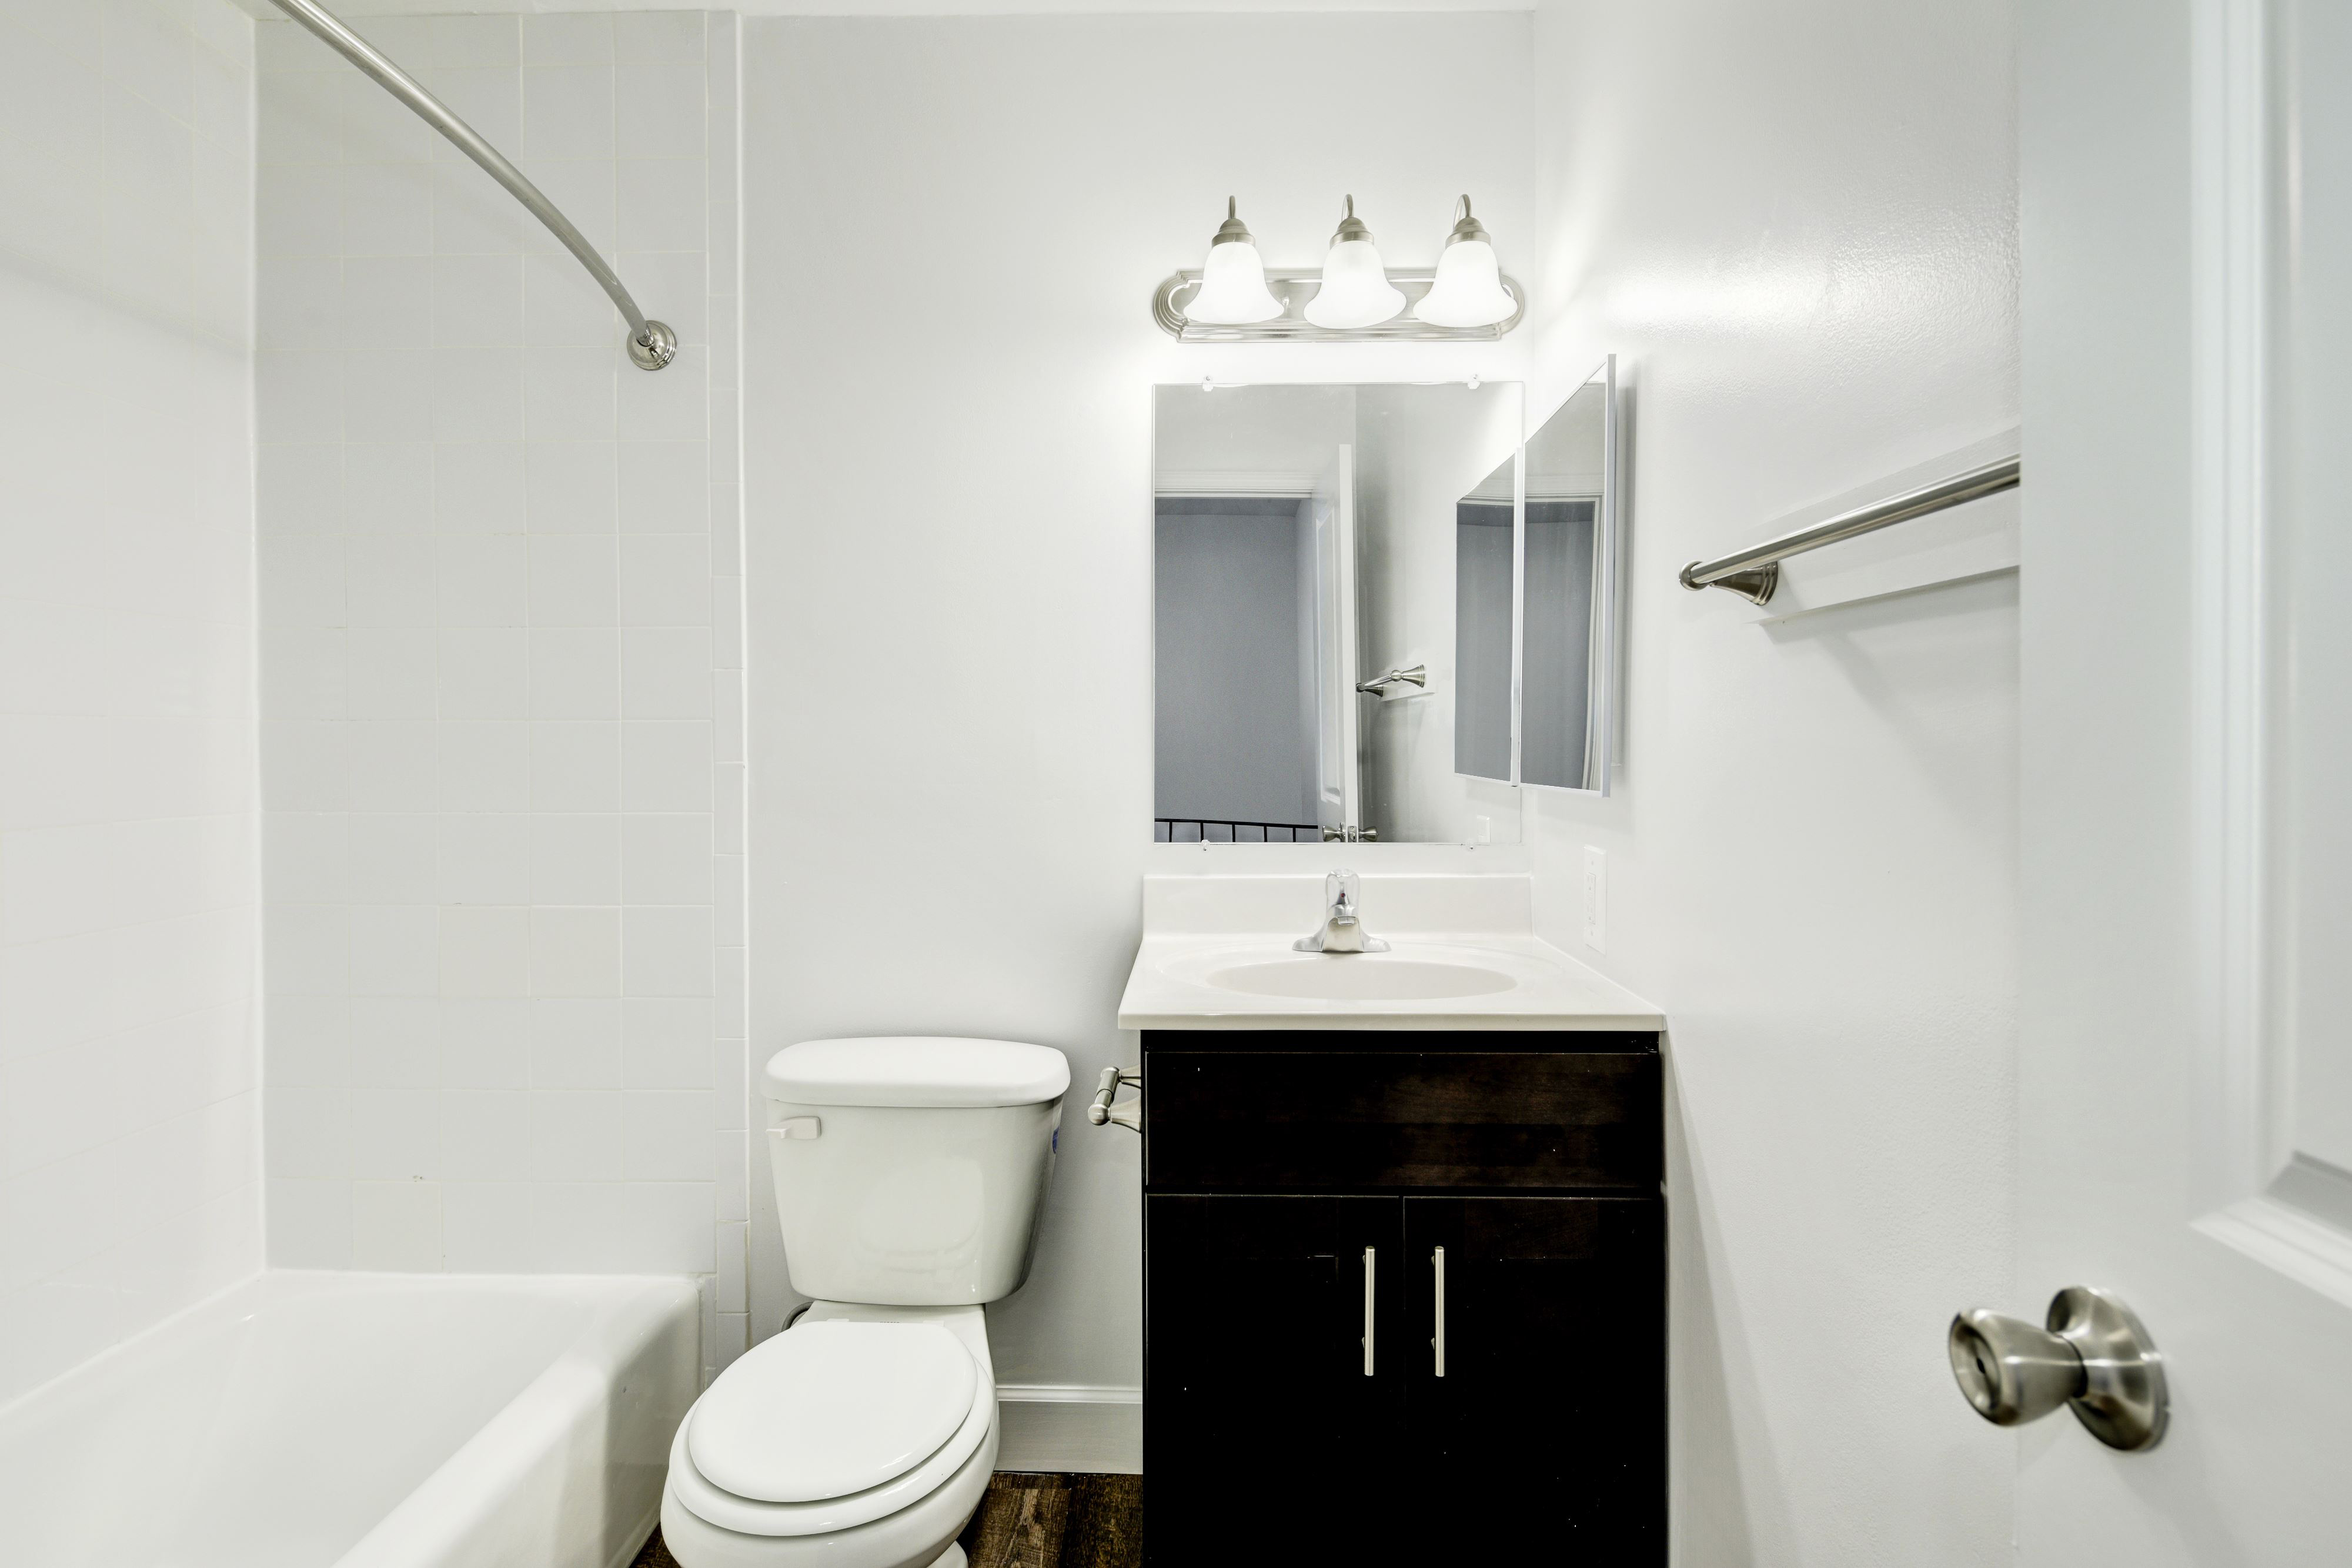 Renovated townhome bathroom at Marrion Square Apartments in Pikesville, MD